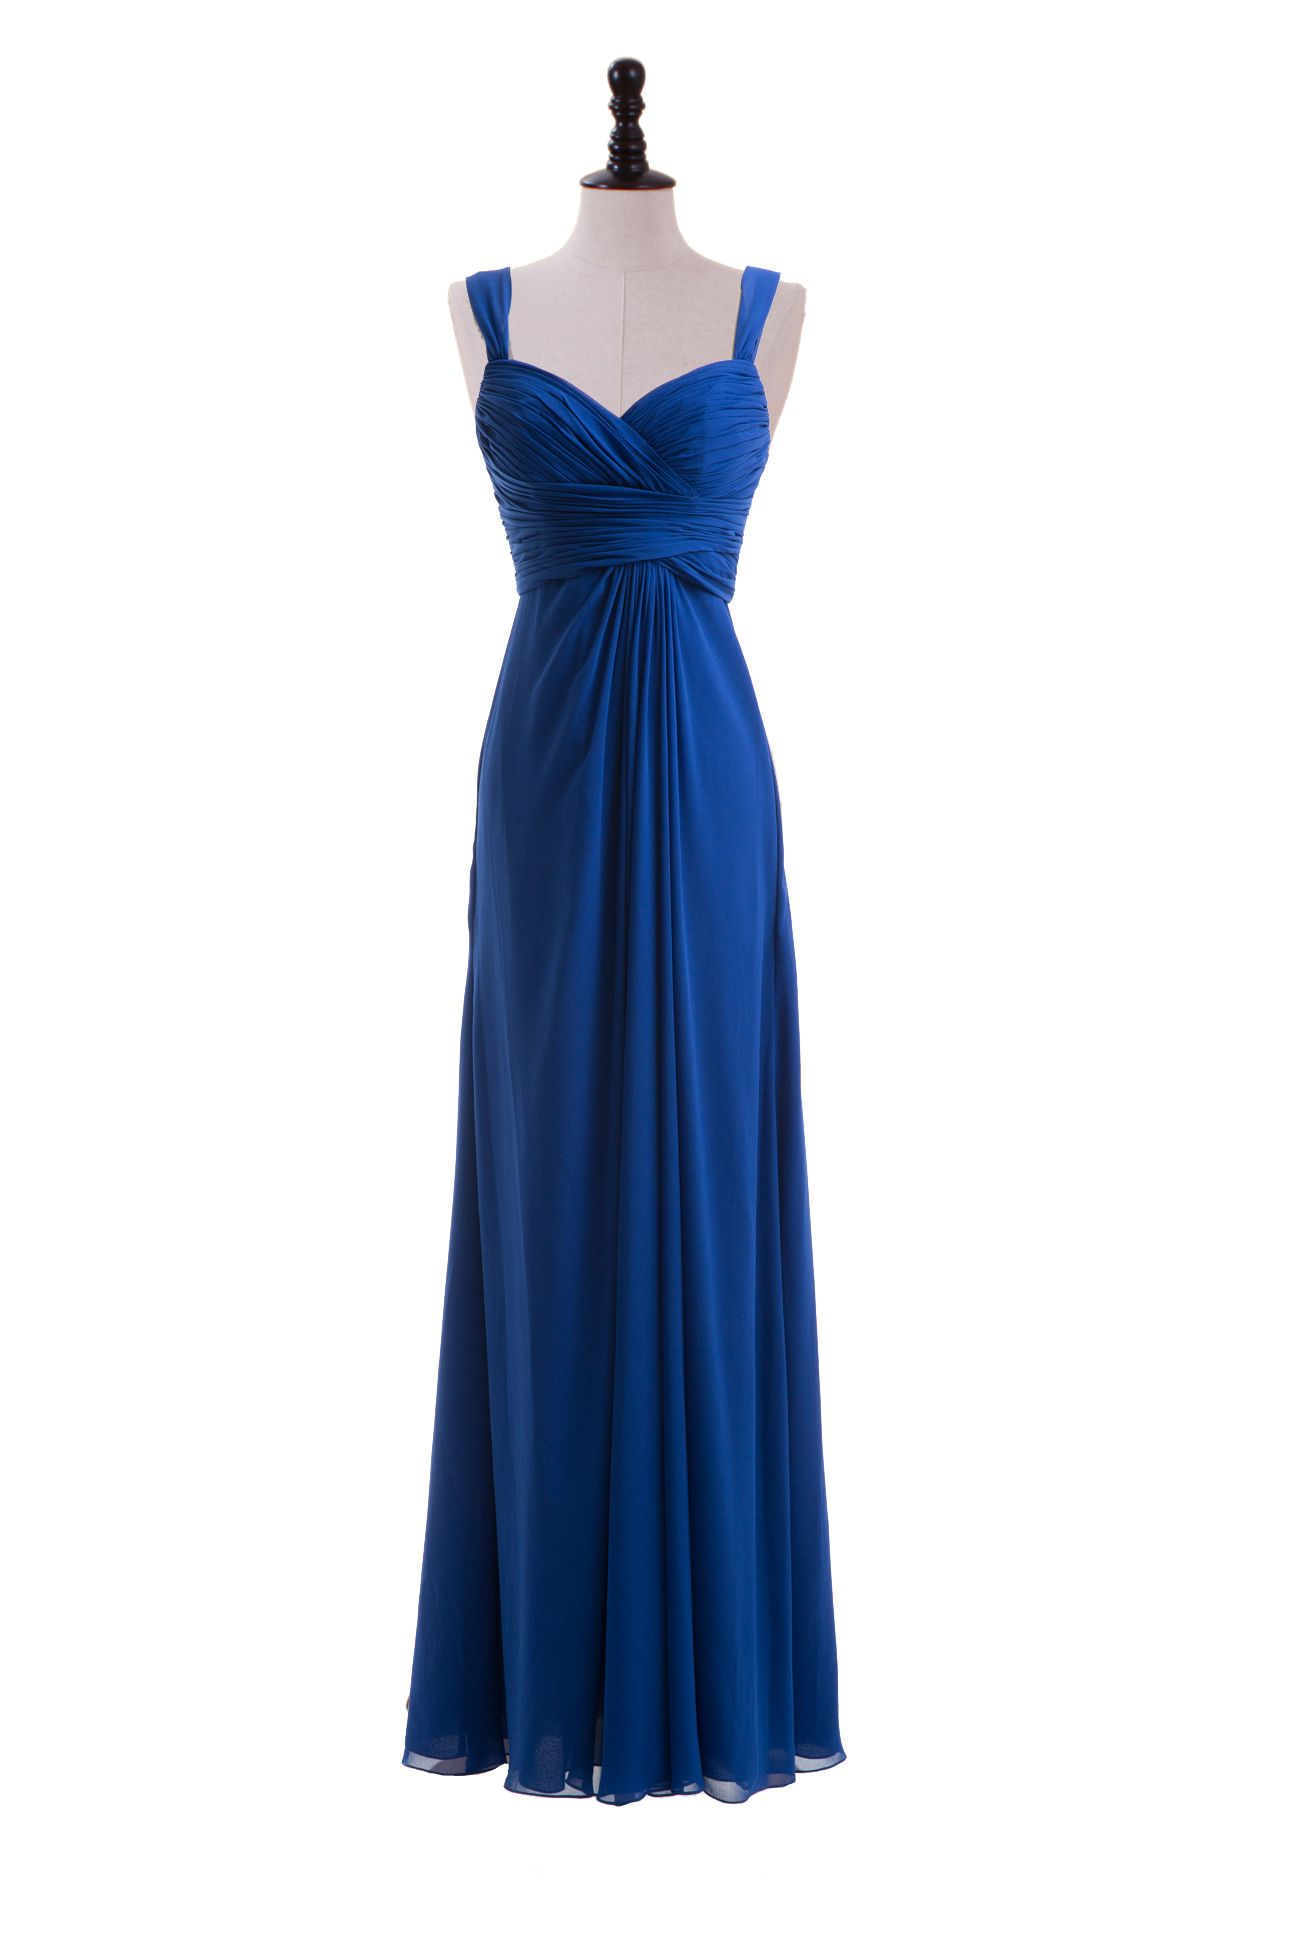 Sweetheart Straps Chiffon Dress For Bridesmaids Happily Ever After